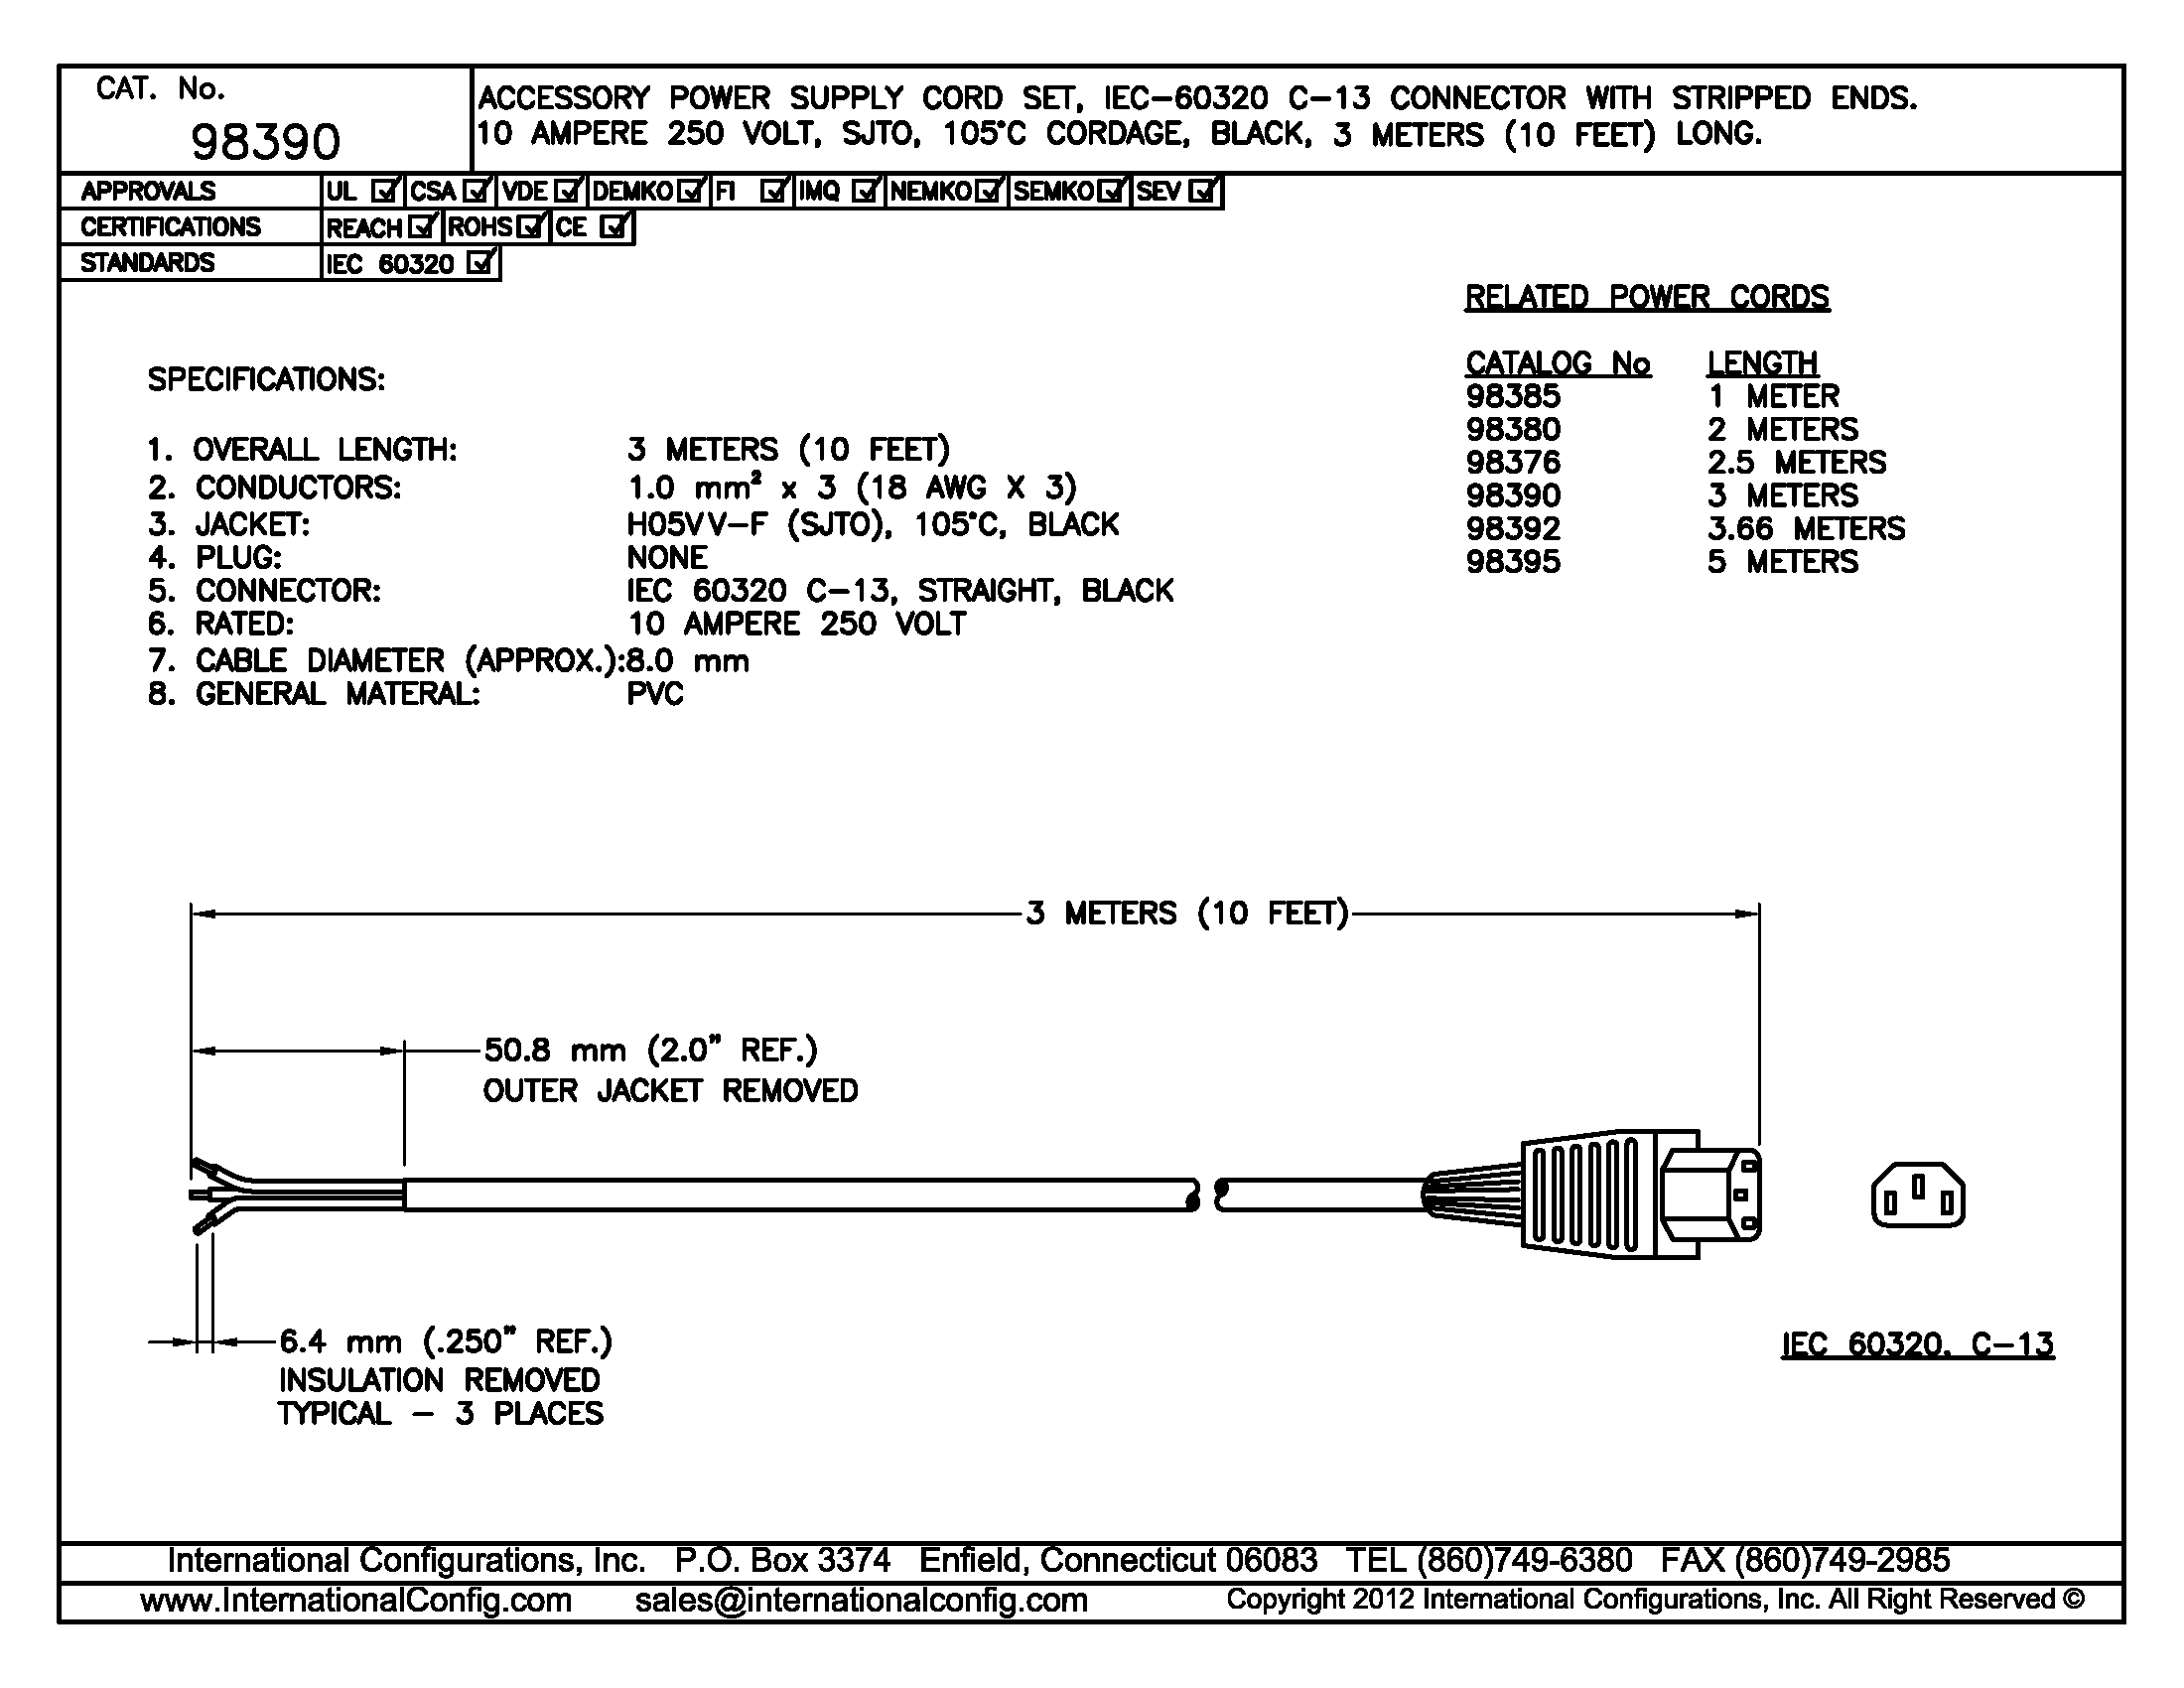 2 pole 3 wire grounding diagram chevy s10 radio wiring 98390 c 13 connector international supply cord